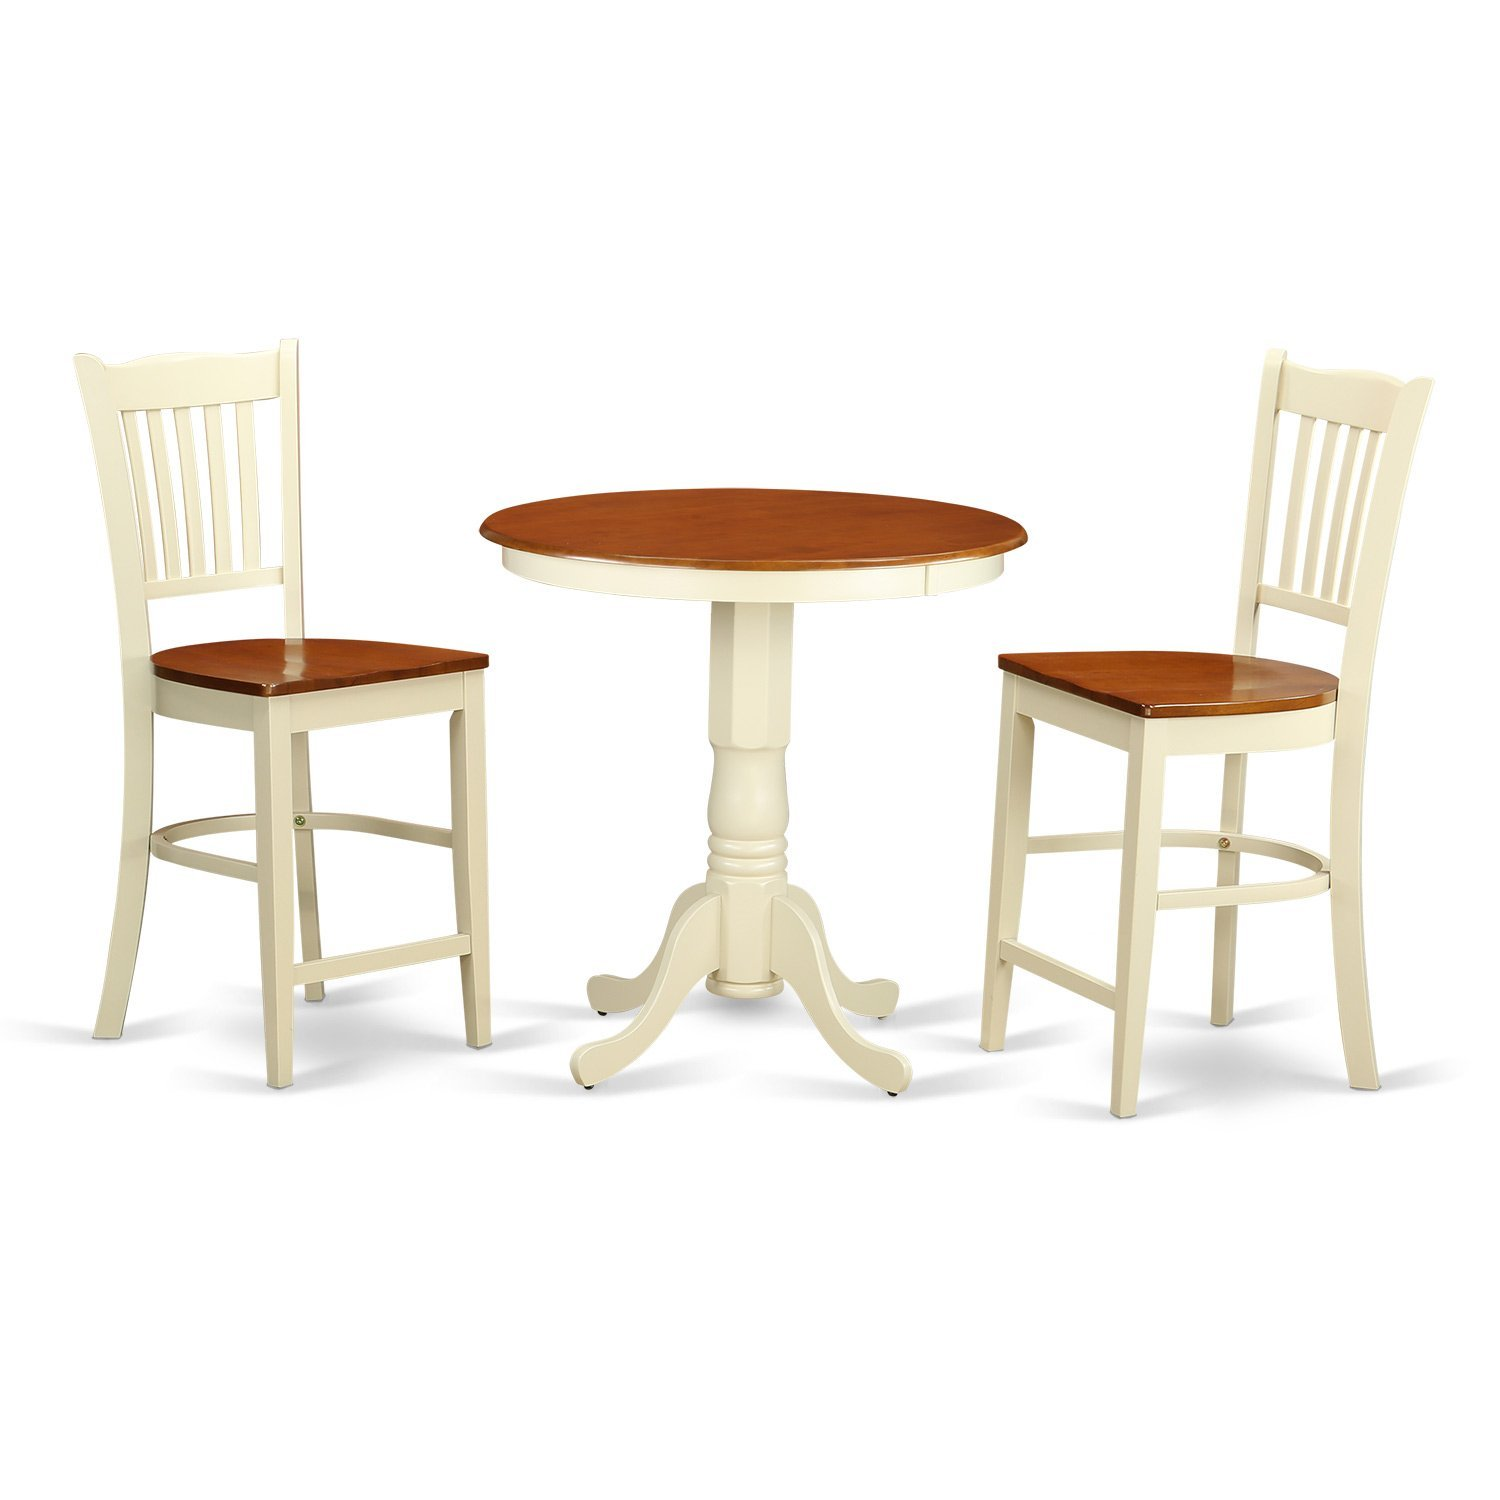 East West Furniture EDGR3-WHI-W 3 Piece High Top Table and 2 Counter Height Dining Chair Set